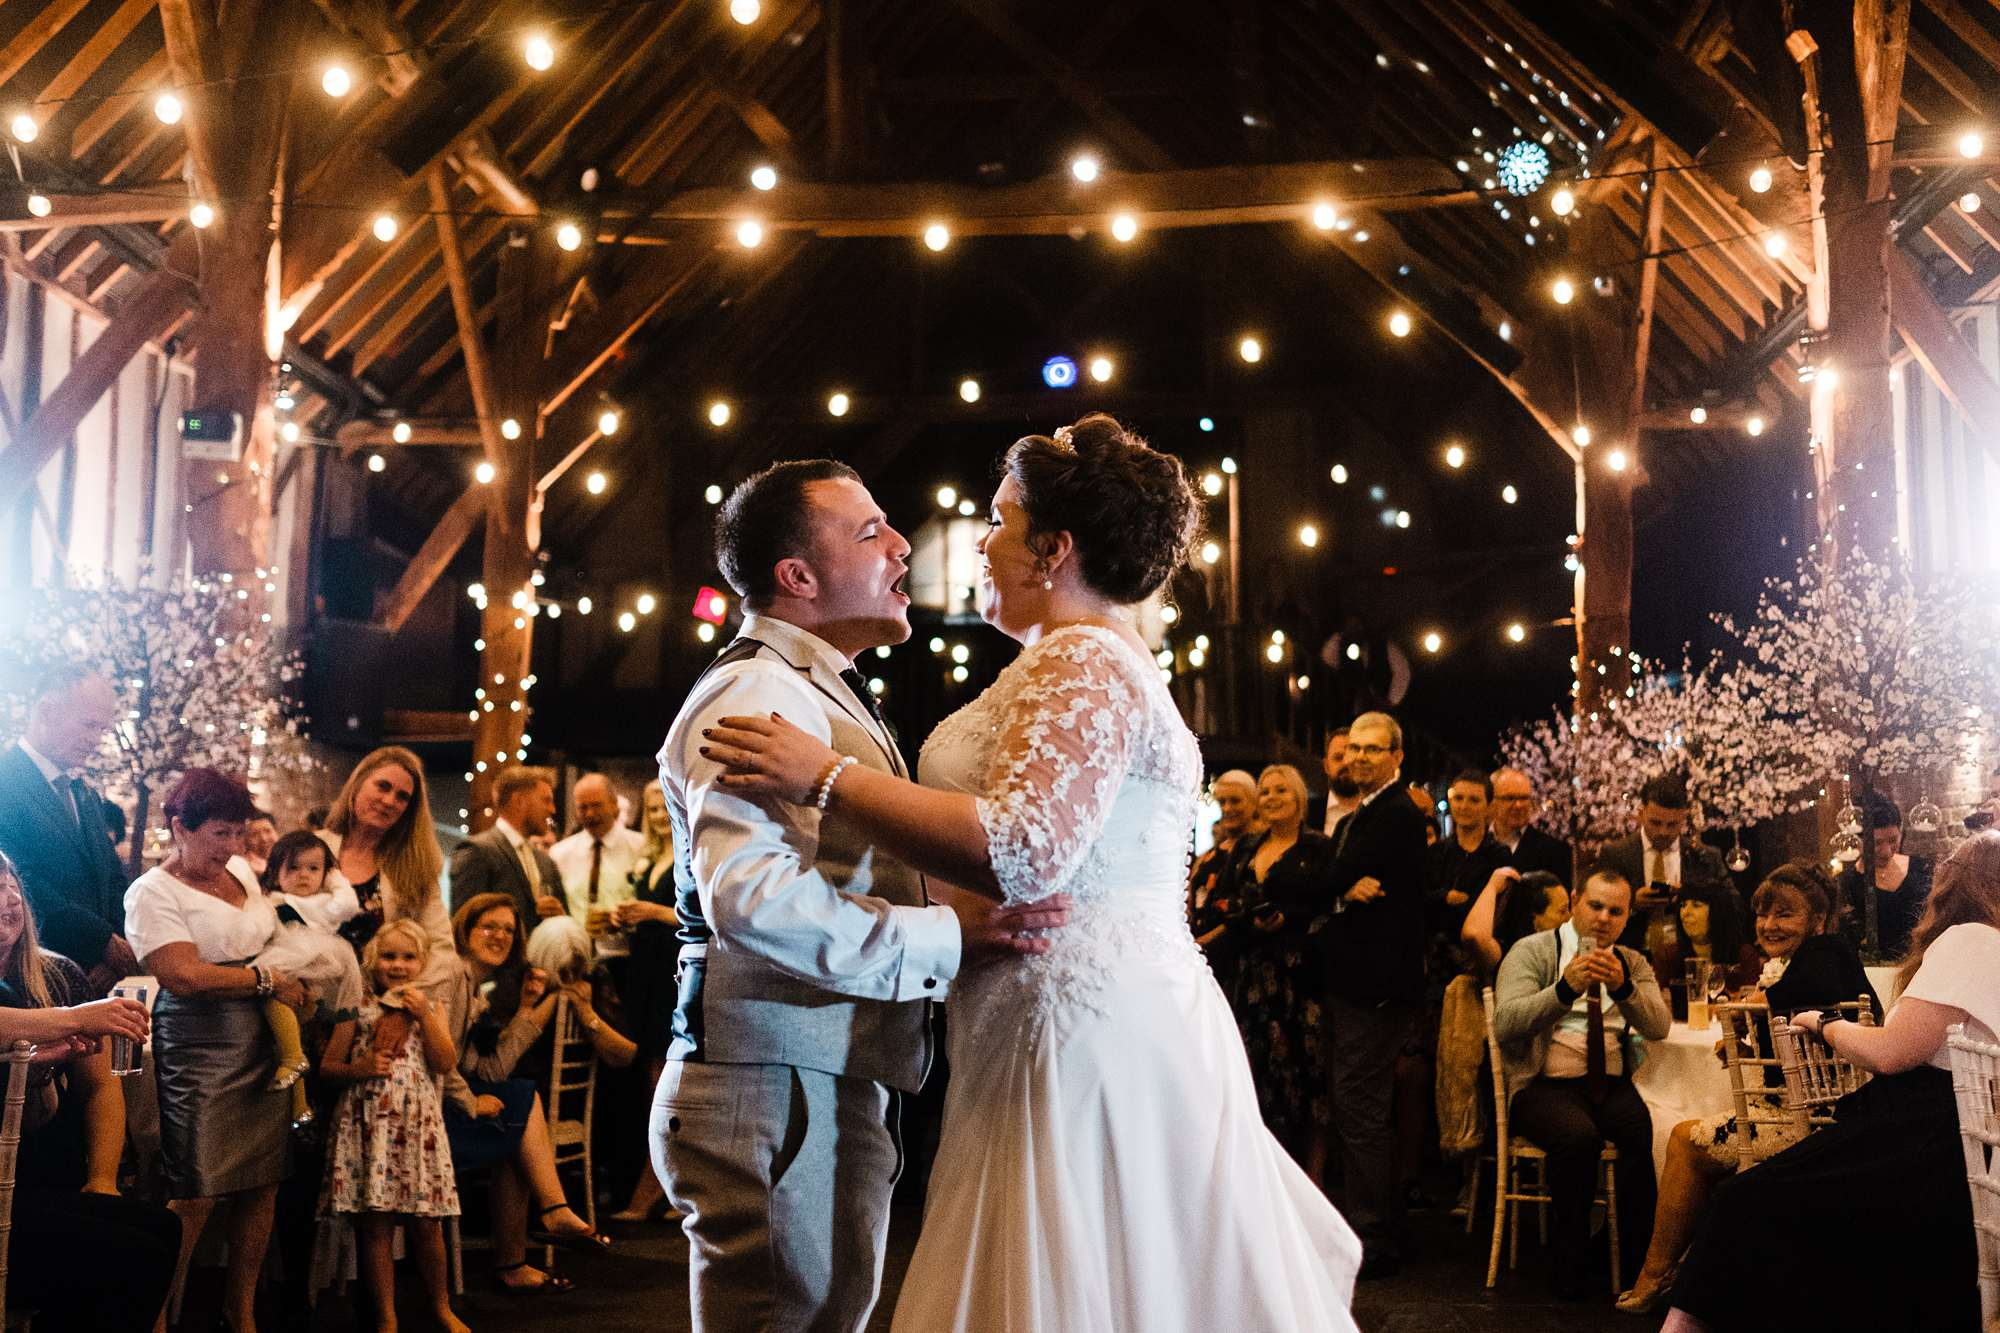 Autumnal wedding at Cooling Castle Barn